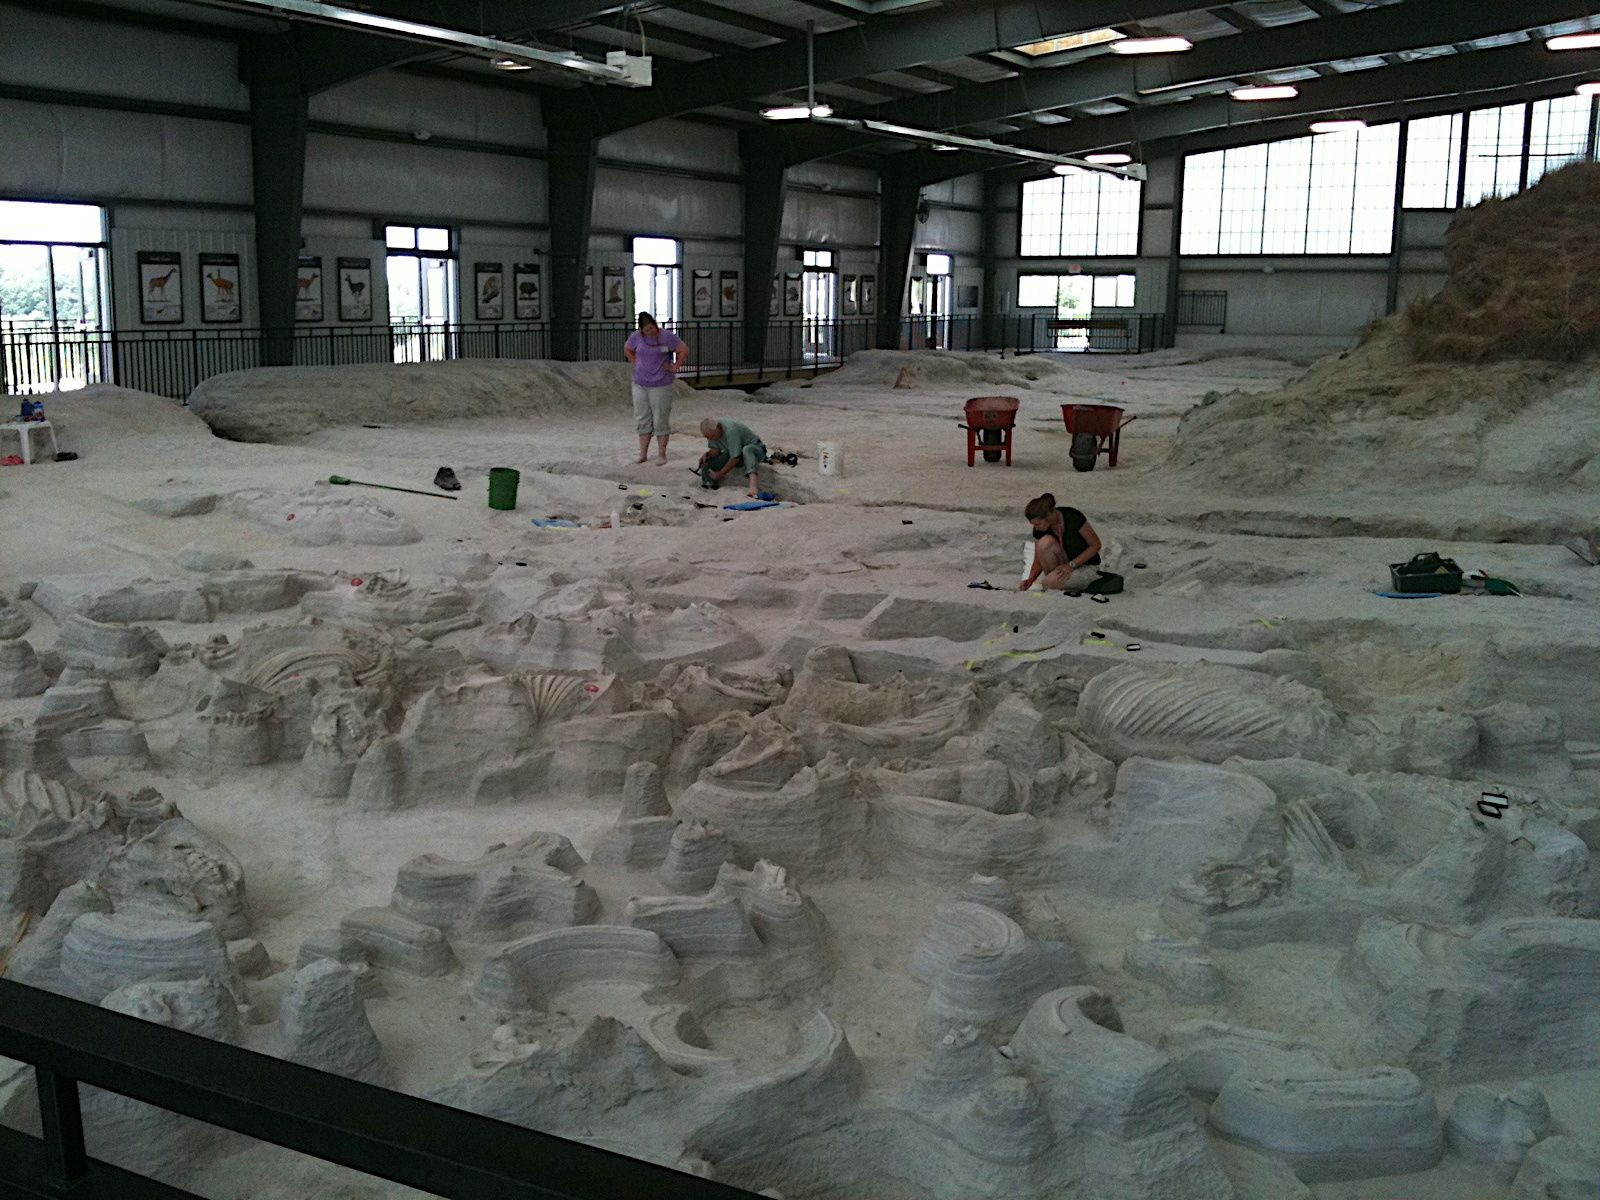 Ashfall Fossil Fossil Beds & Vacations, Royal, Nebraska